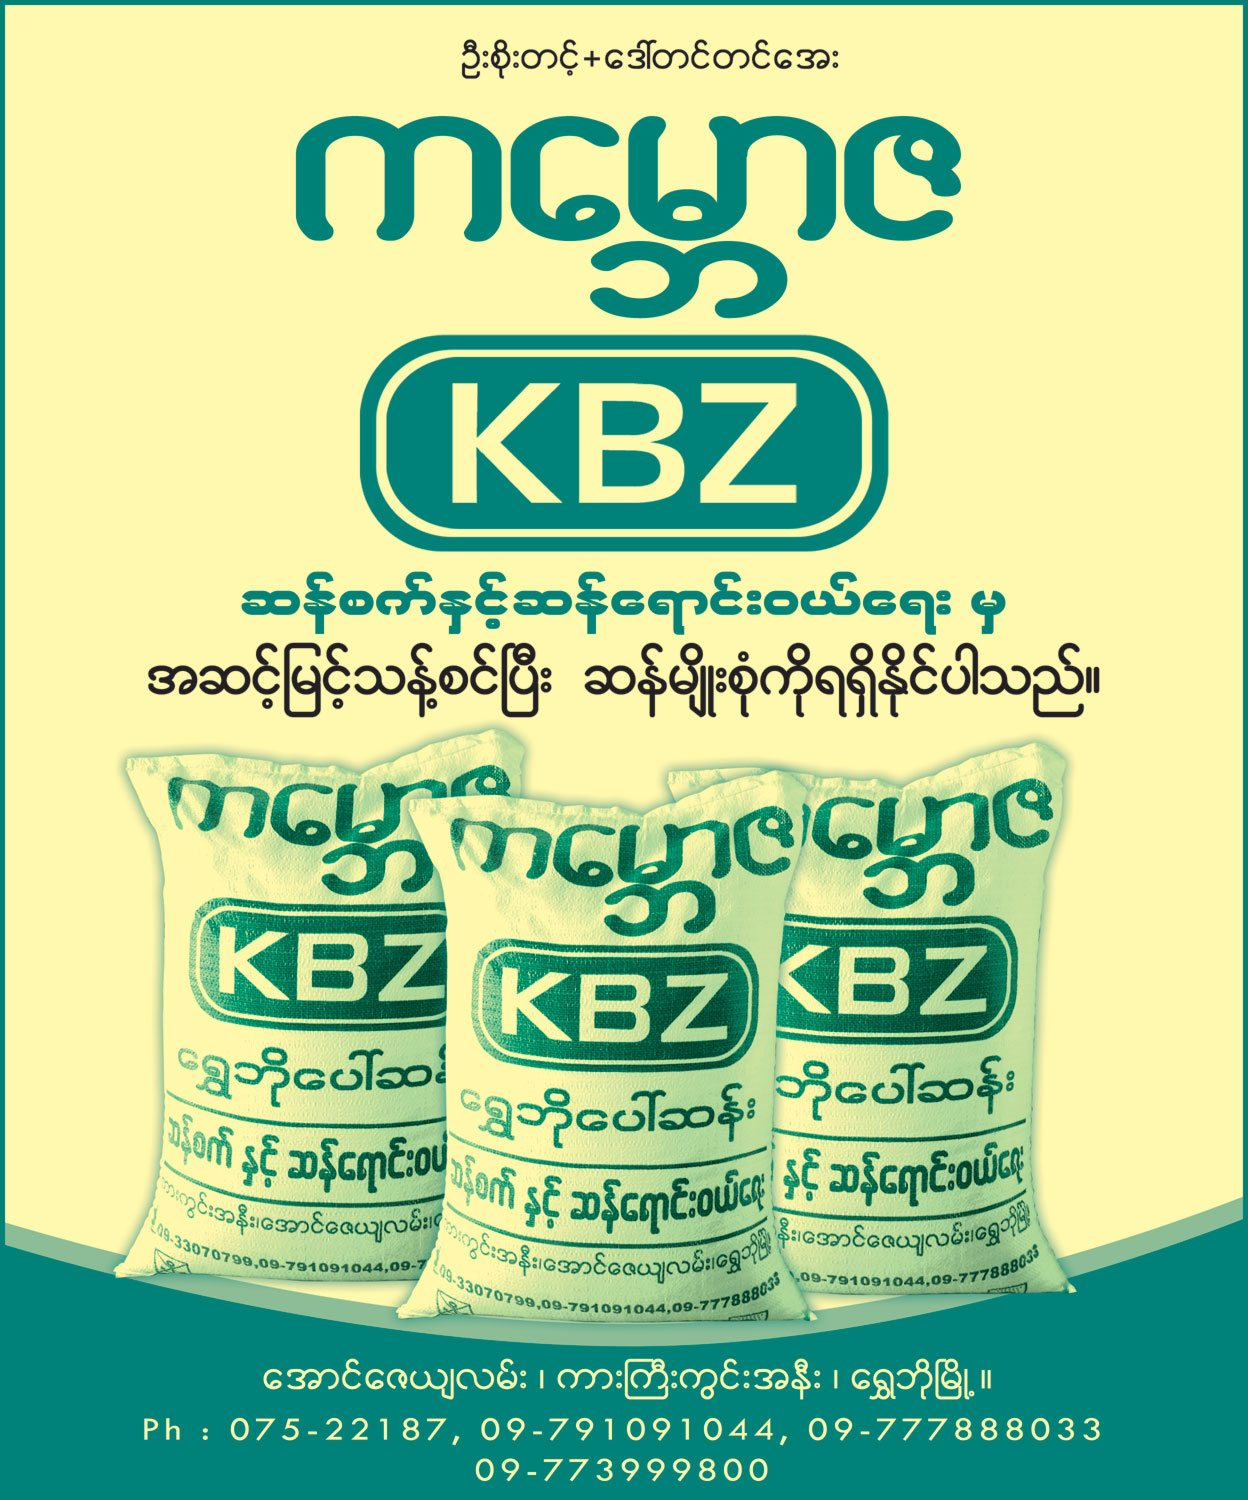 2018/Mandalay/MBDL/Kanbawza(Warehouses-[Rice])_0167.jpg